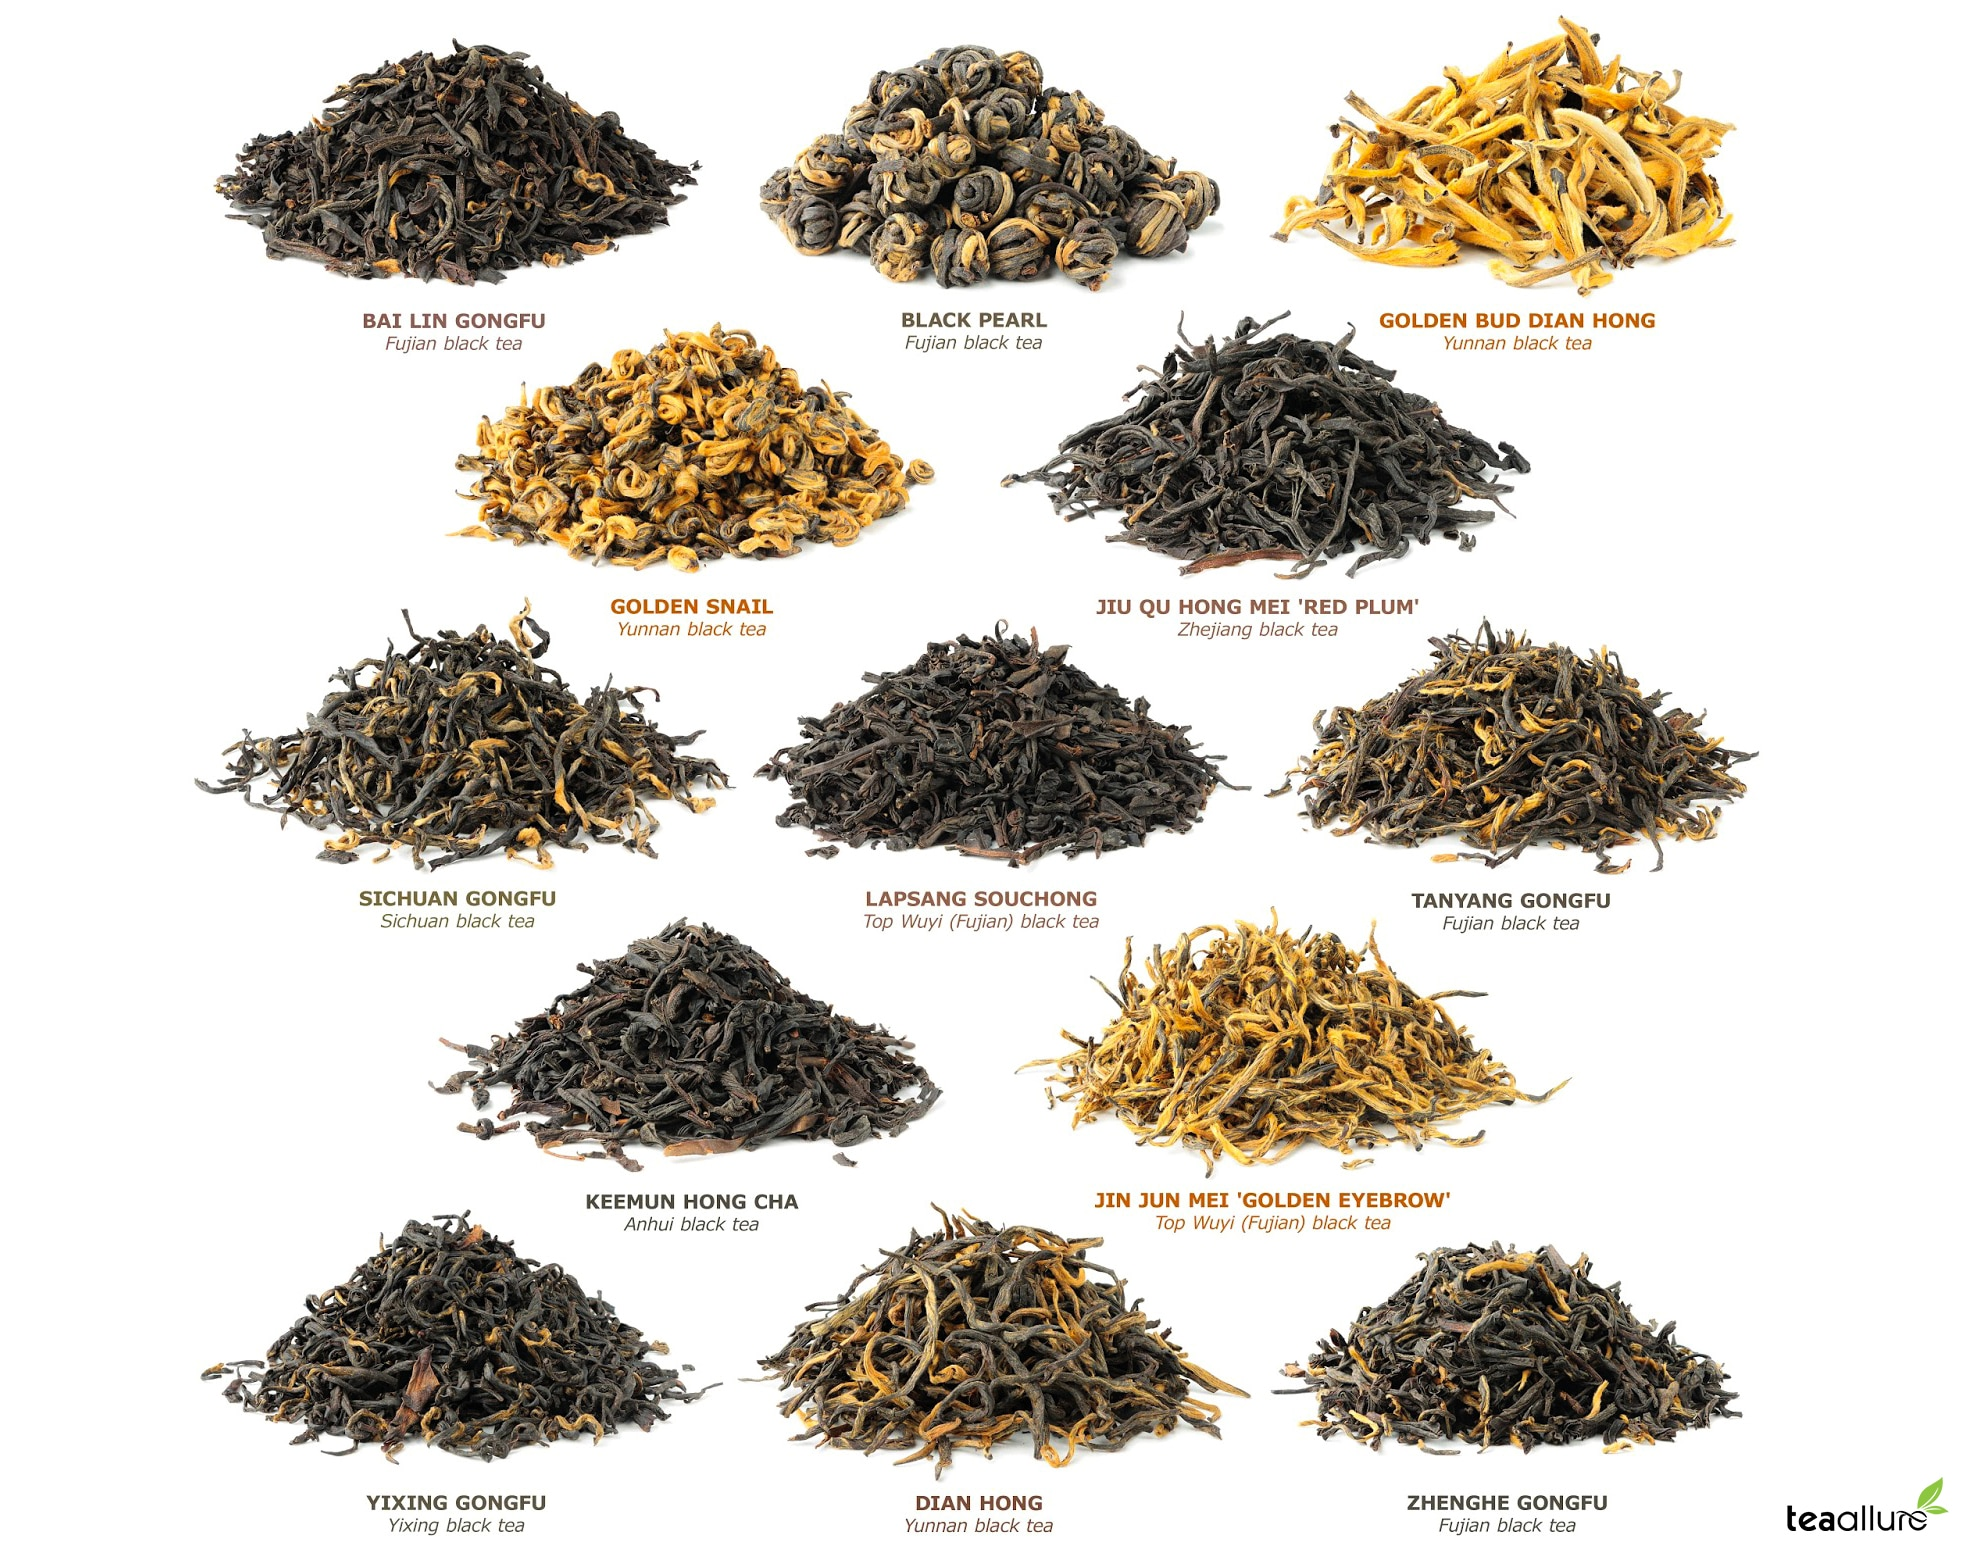 Chinese Black Tea types